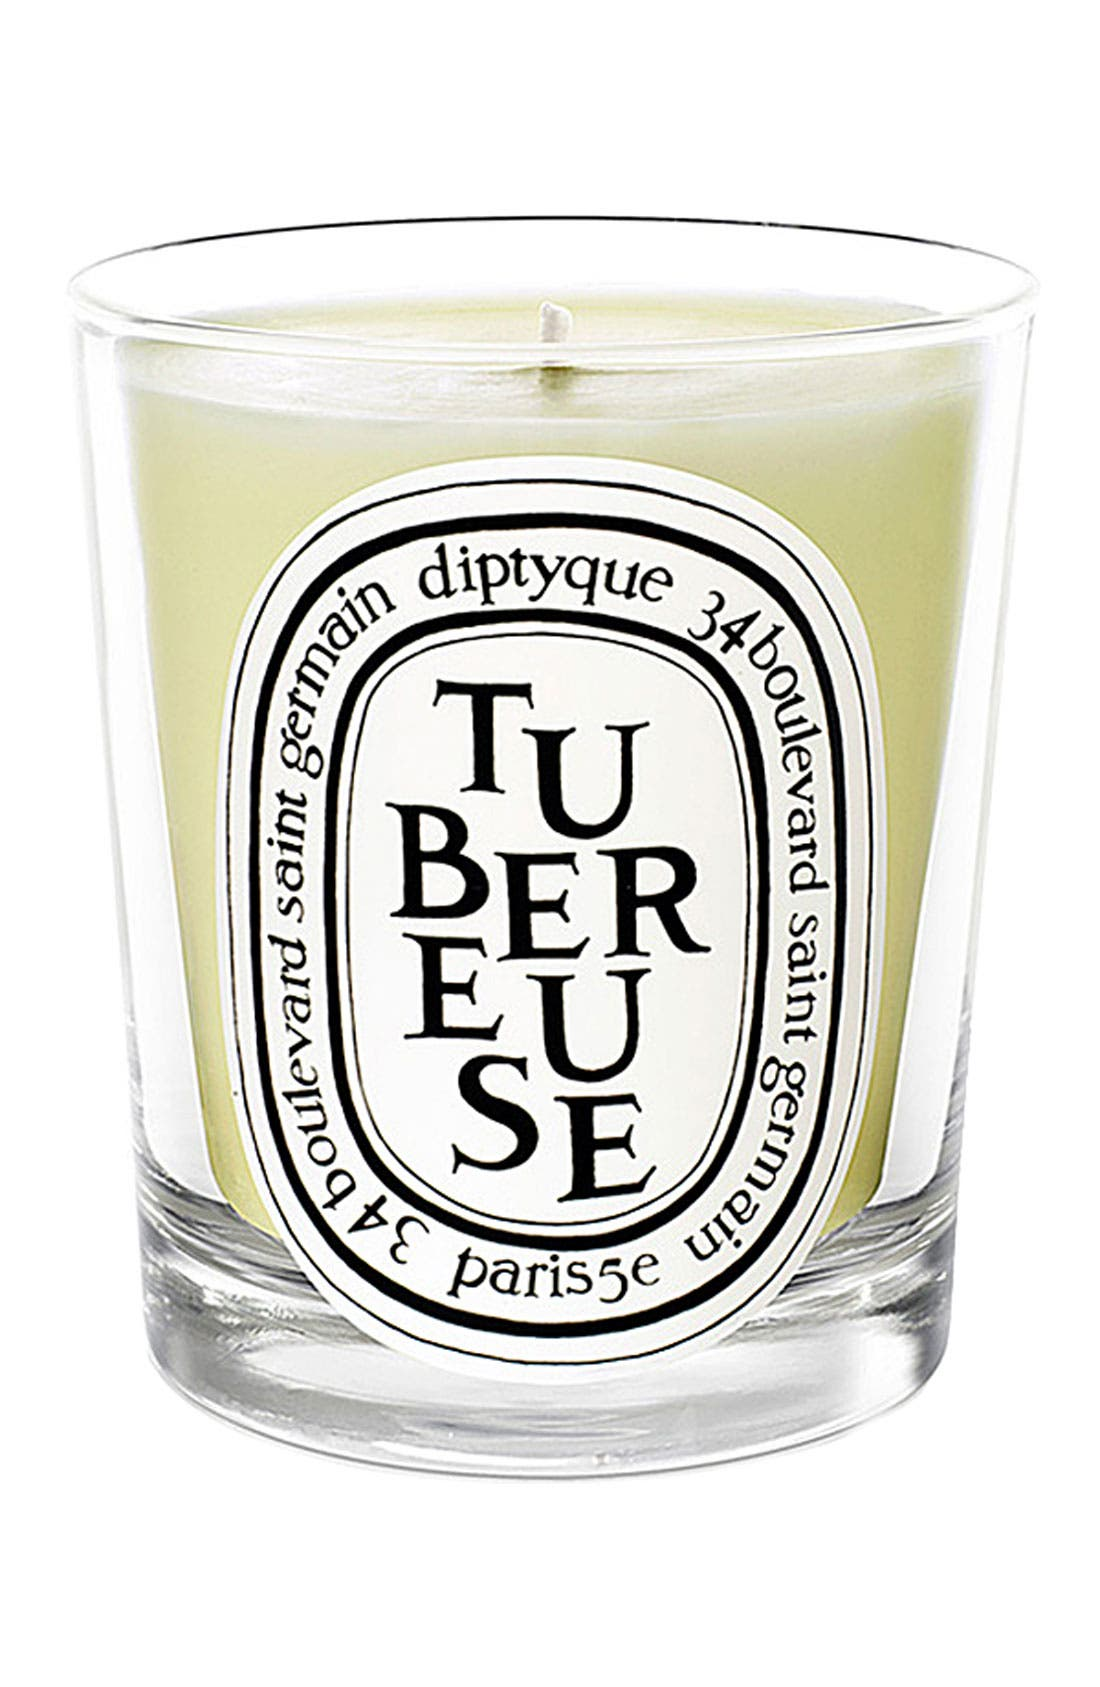 diptyque Tubereuse/Tuberose Scented Candle